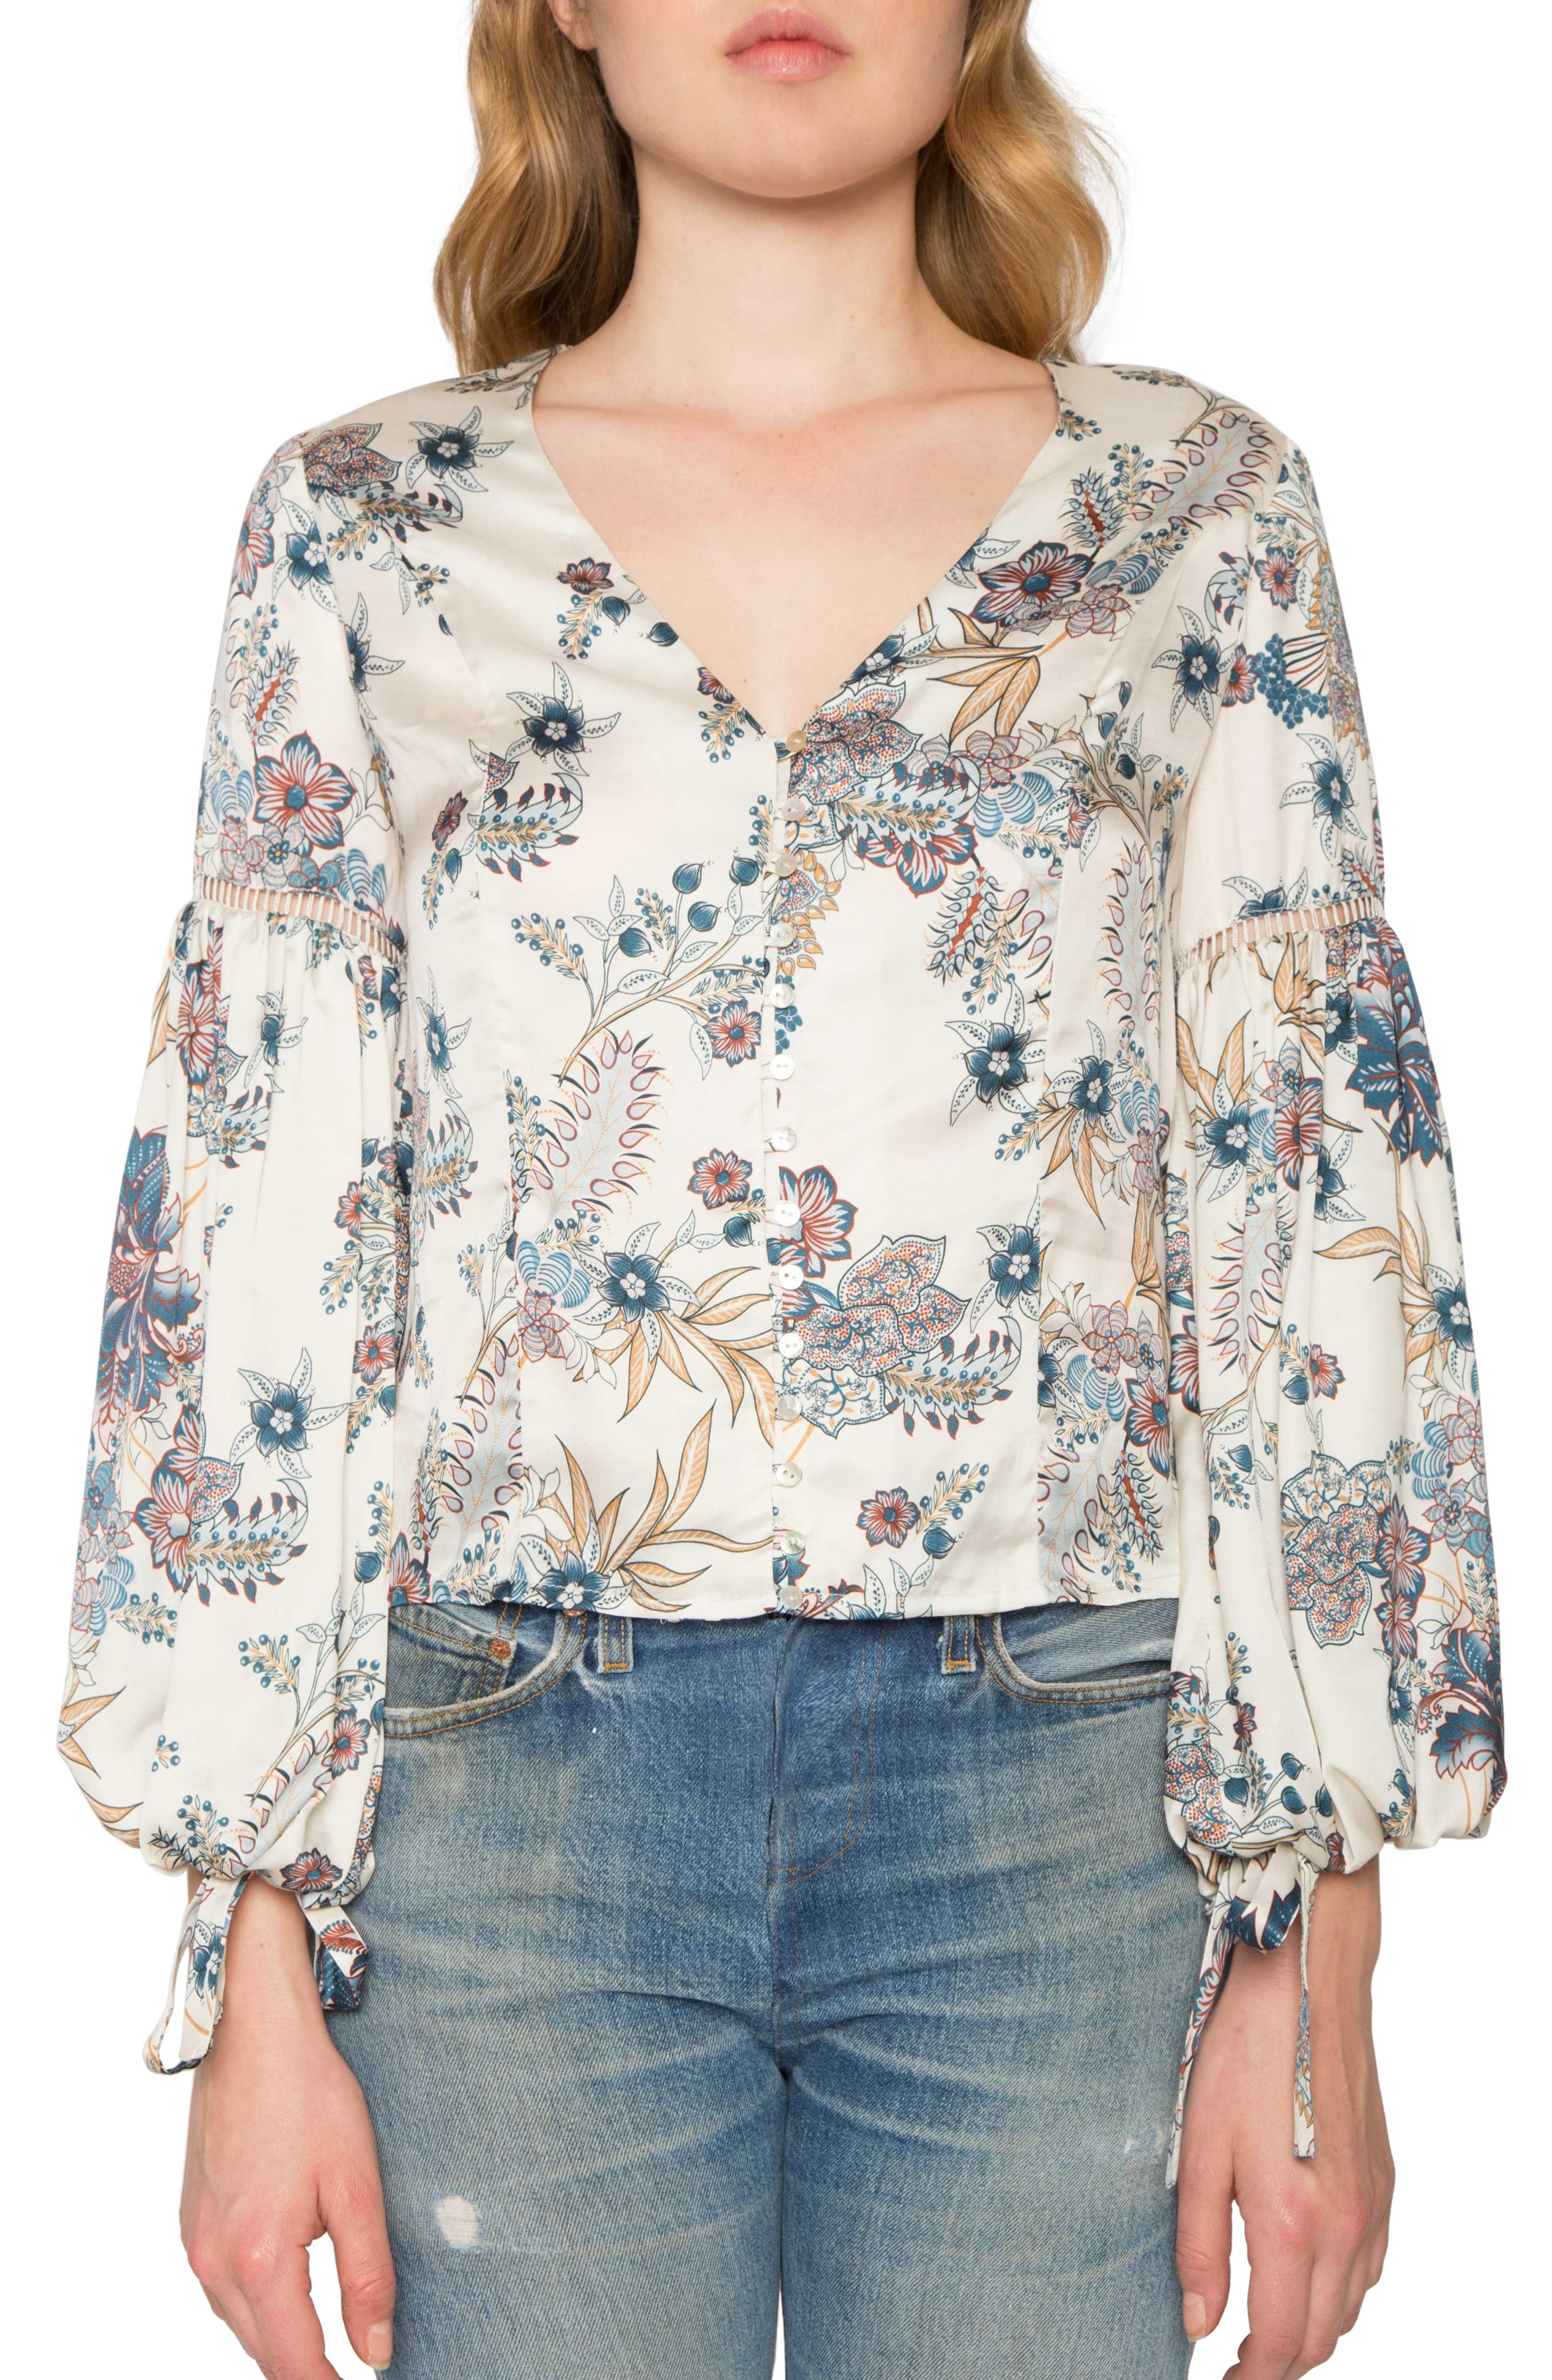 Alternate Image 1 Selected - Willow & Clay Print Tie Cuff Blouse